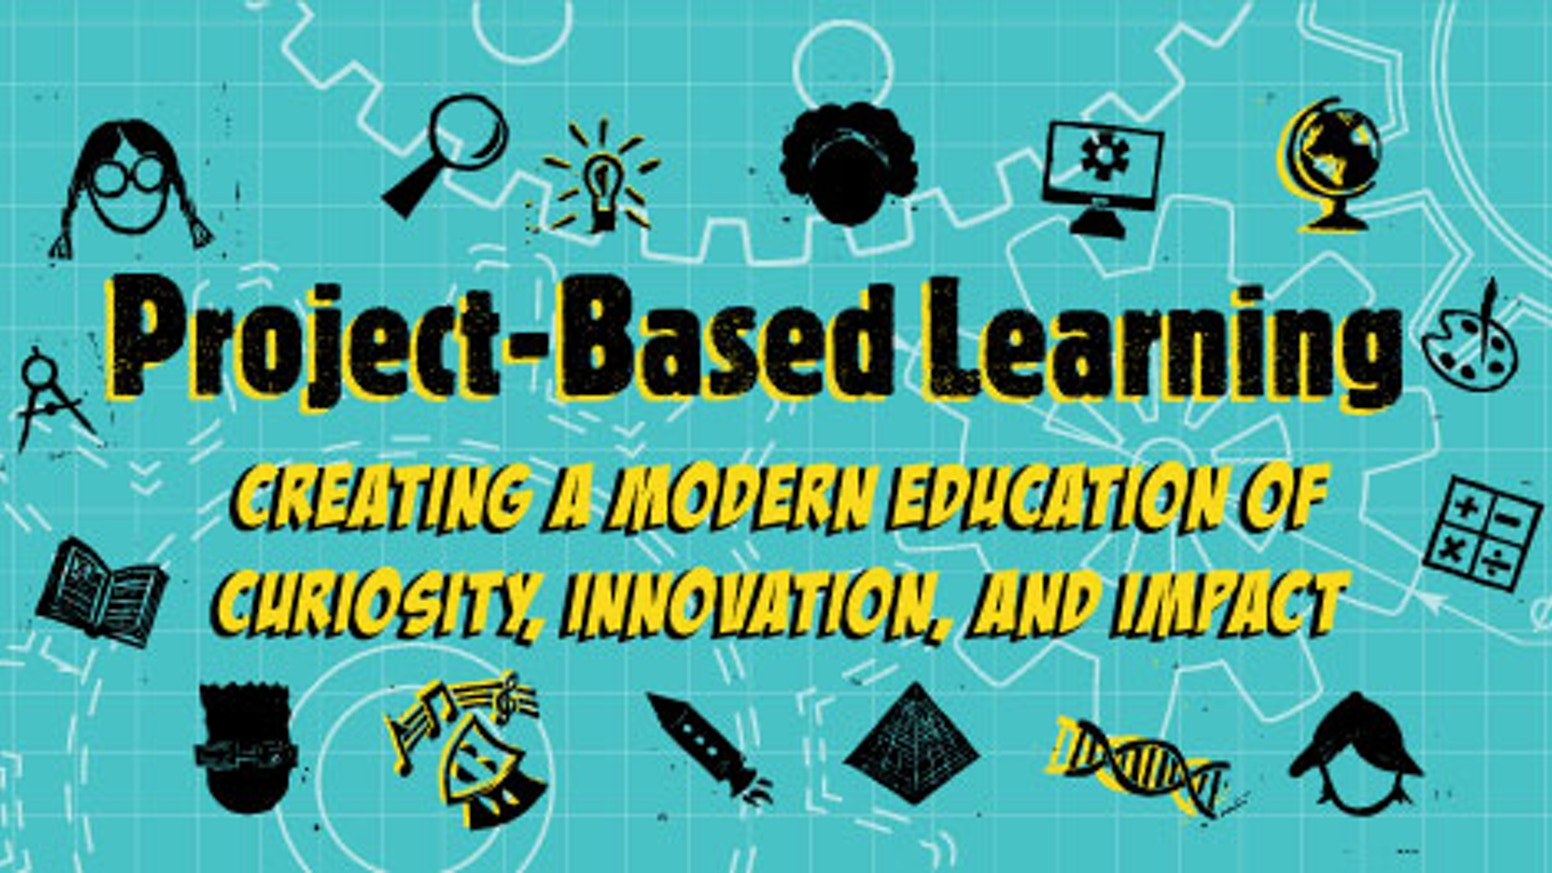 An inspirational guide to creating lifelong learners through a modern education of curiosity, innovation, and impact!